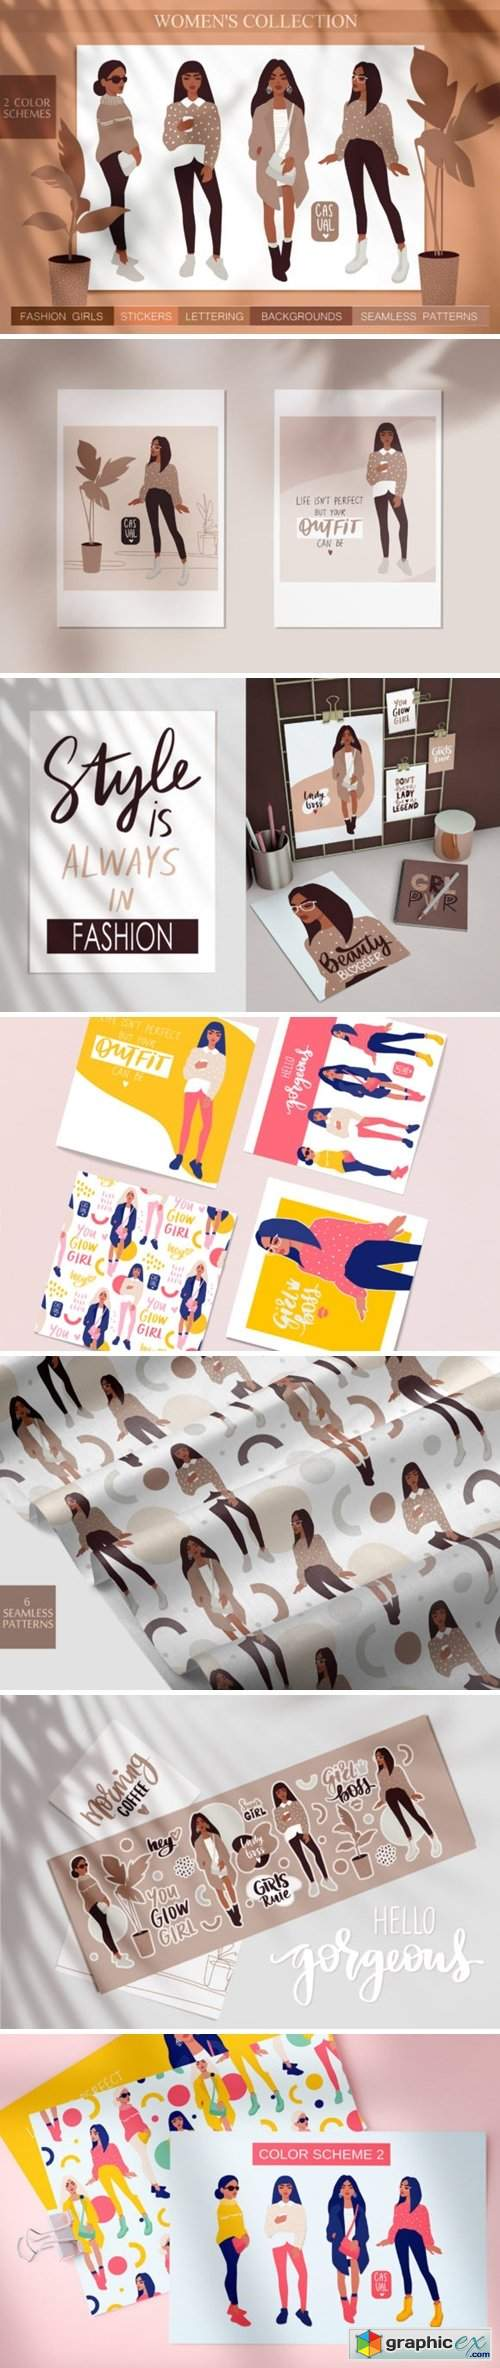 Women, Girls Fashion Illustration